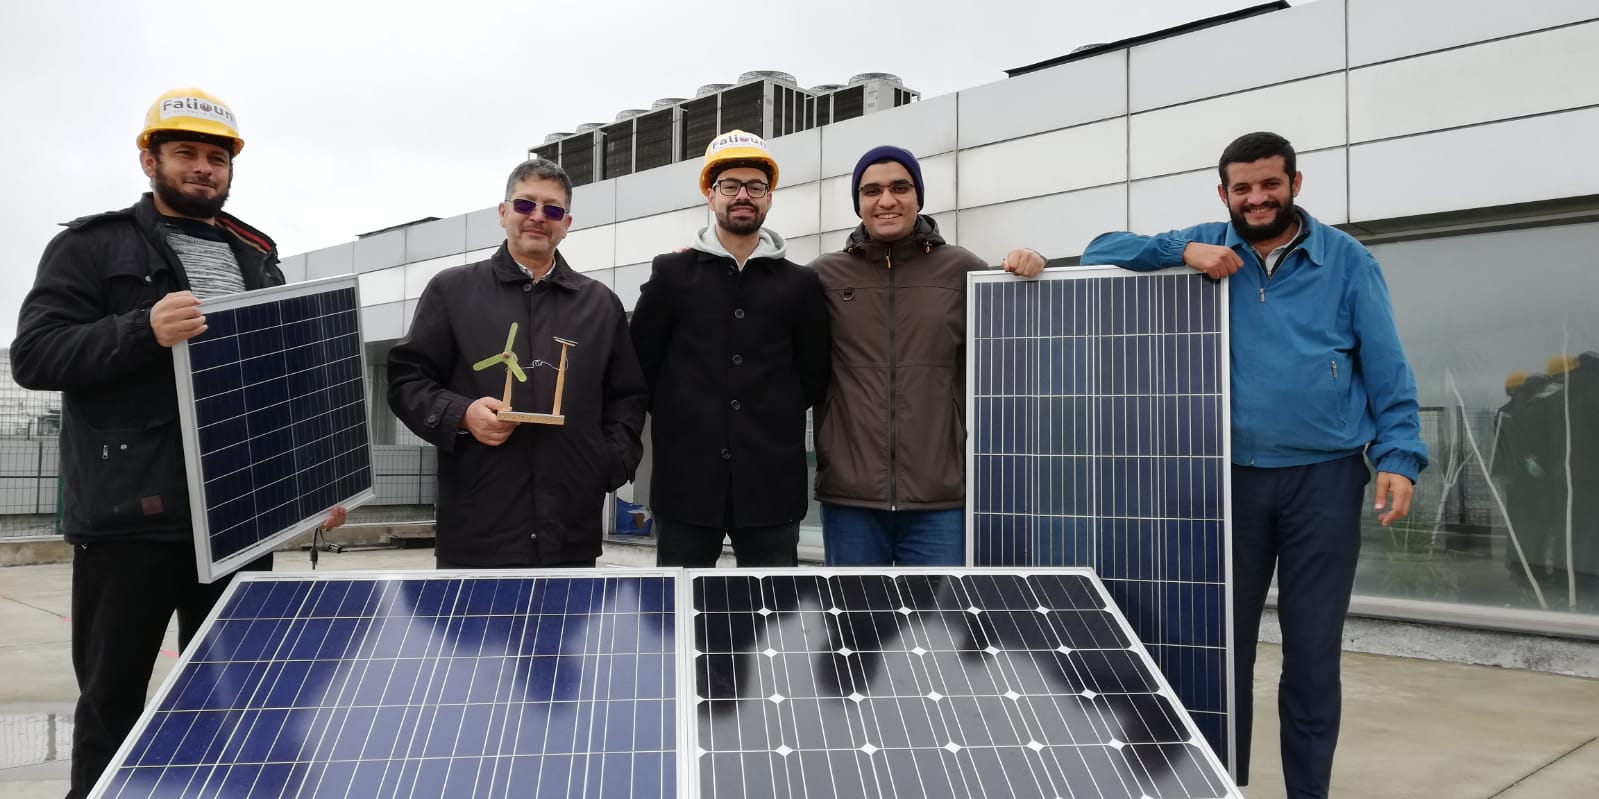 Begginer Course Falioun Germany For Renewable Energy